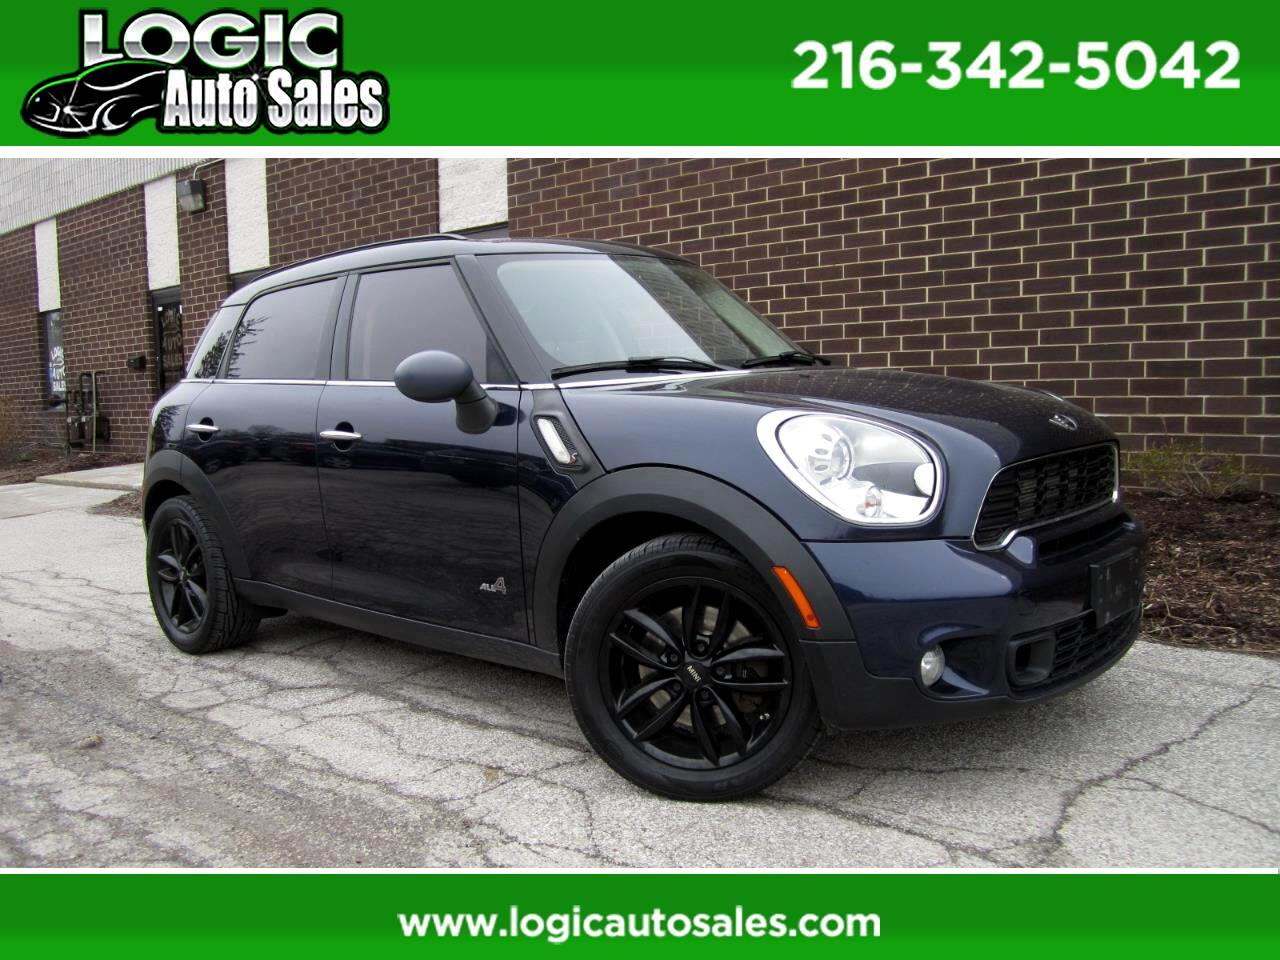 2011 MINI Cooper Countryman AWD 4dr S ALL4